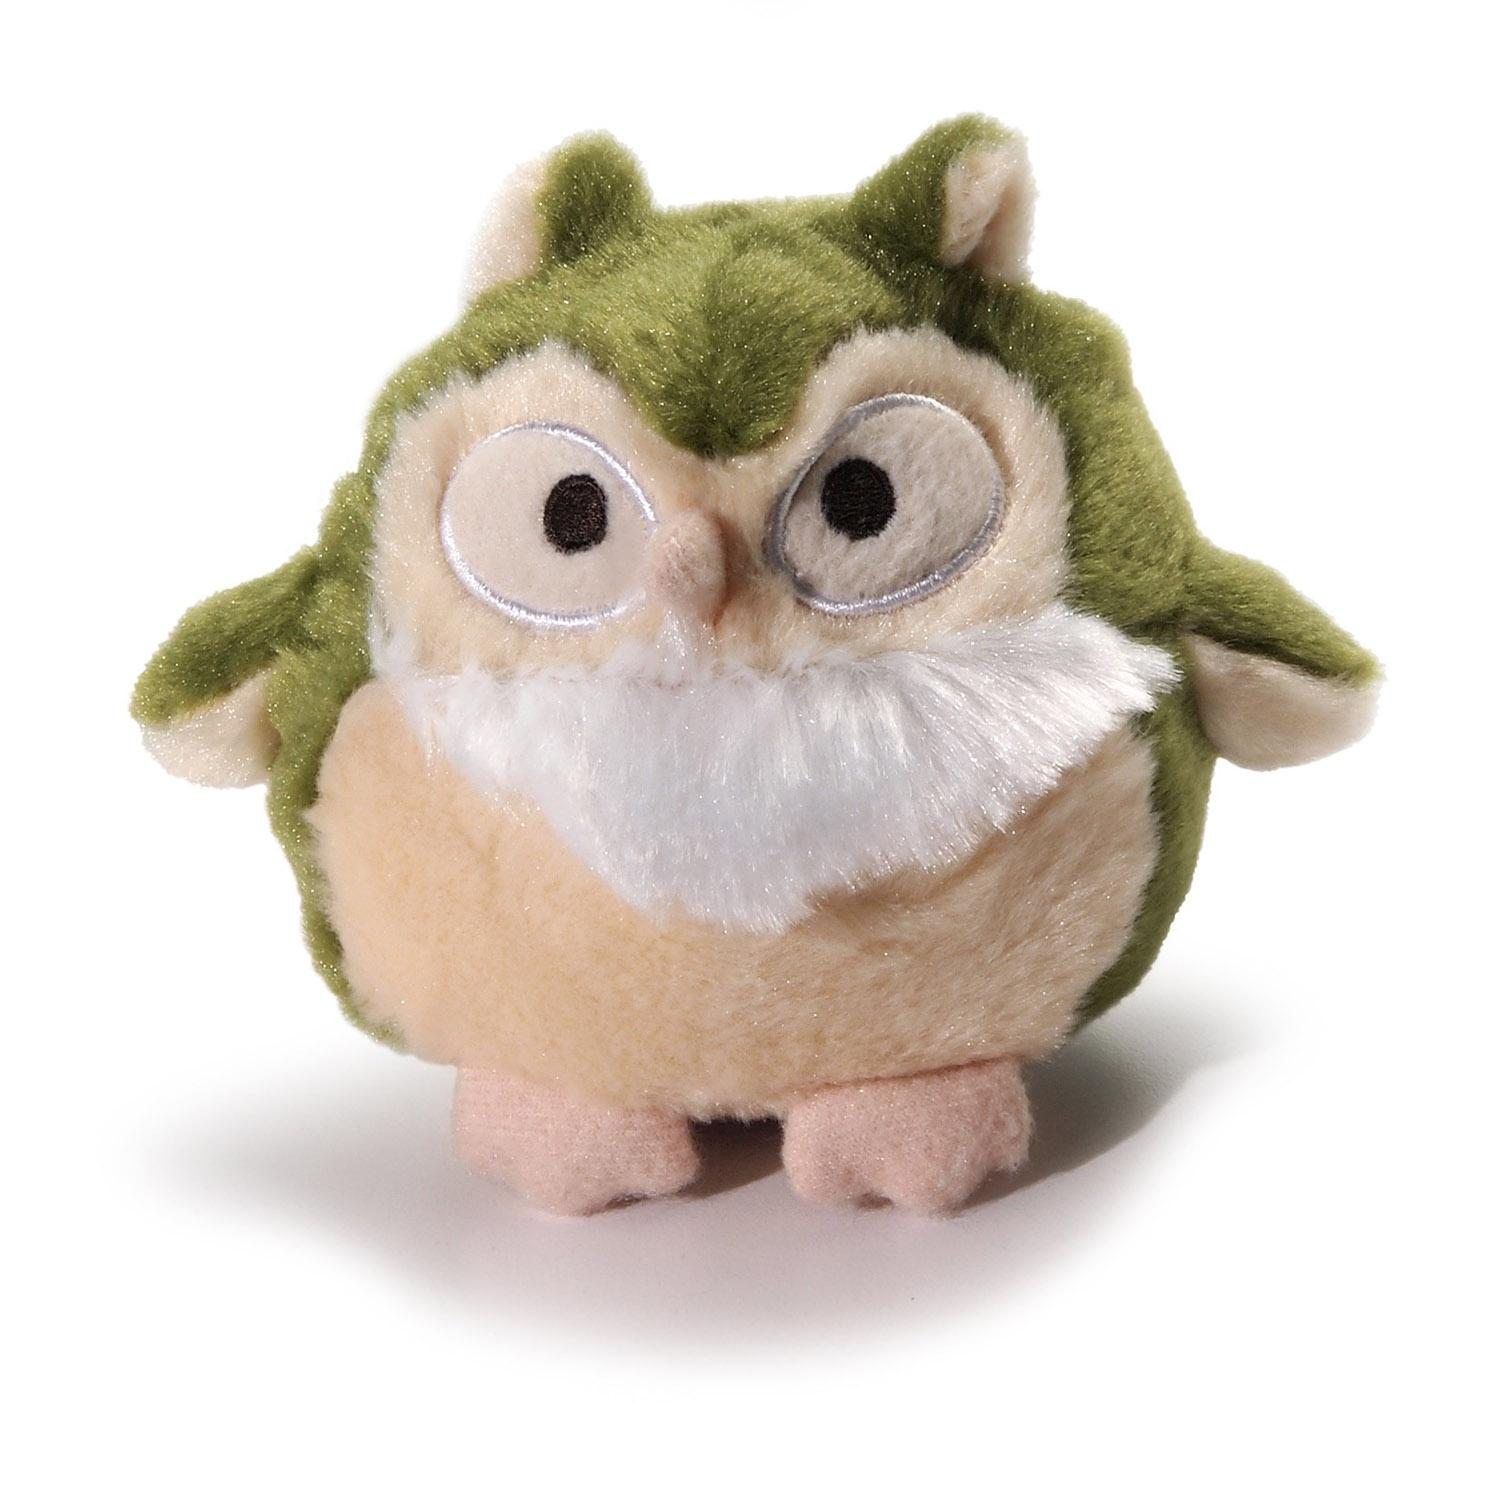 Charming Pet Howling Hoots Dog Toy - Green